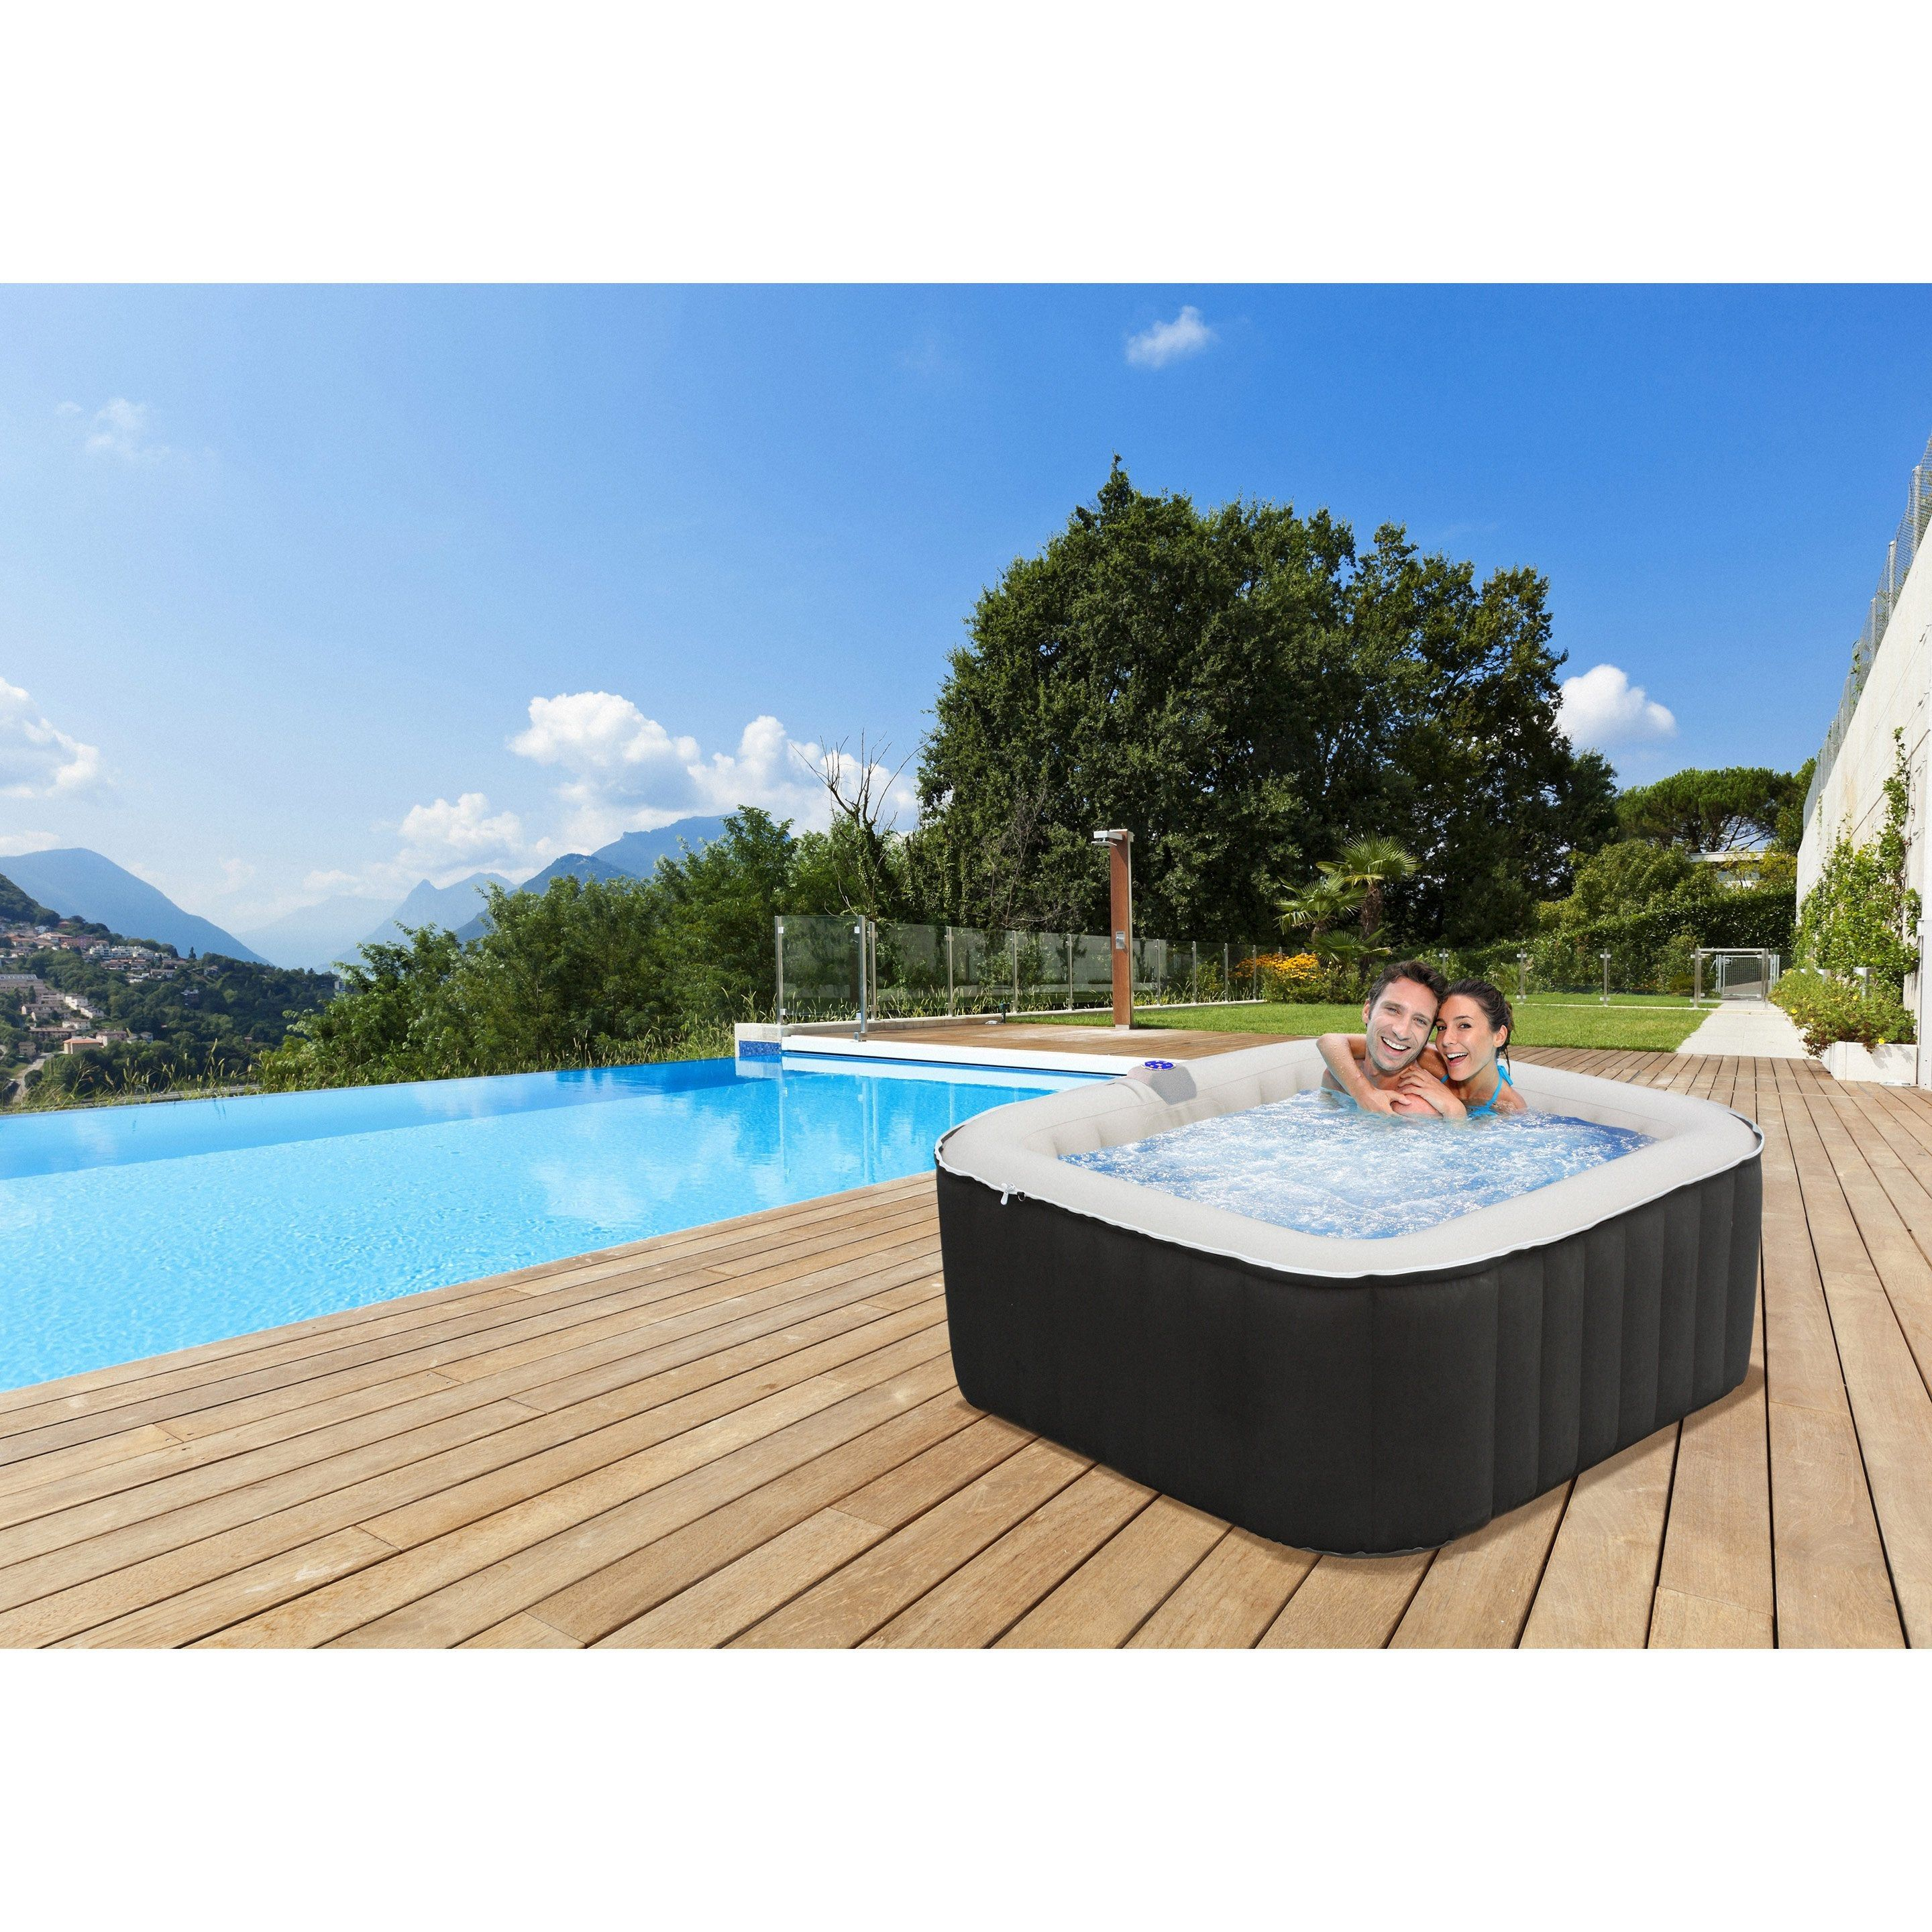 Spa Gonflable A Leroy Merlin spa gonflable pur 4 personnes cebu water'clip bcf outdoor